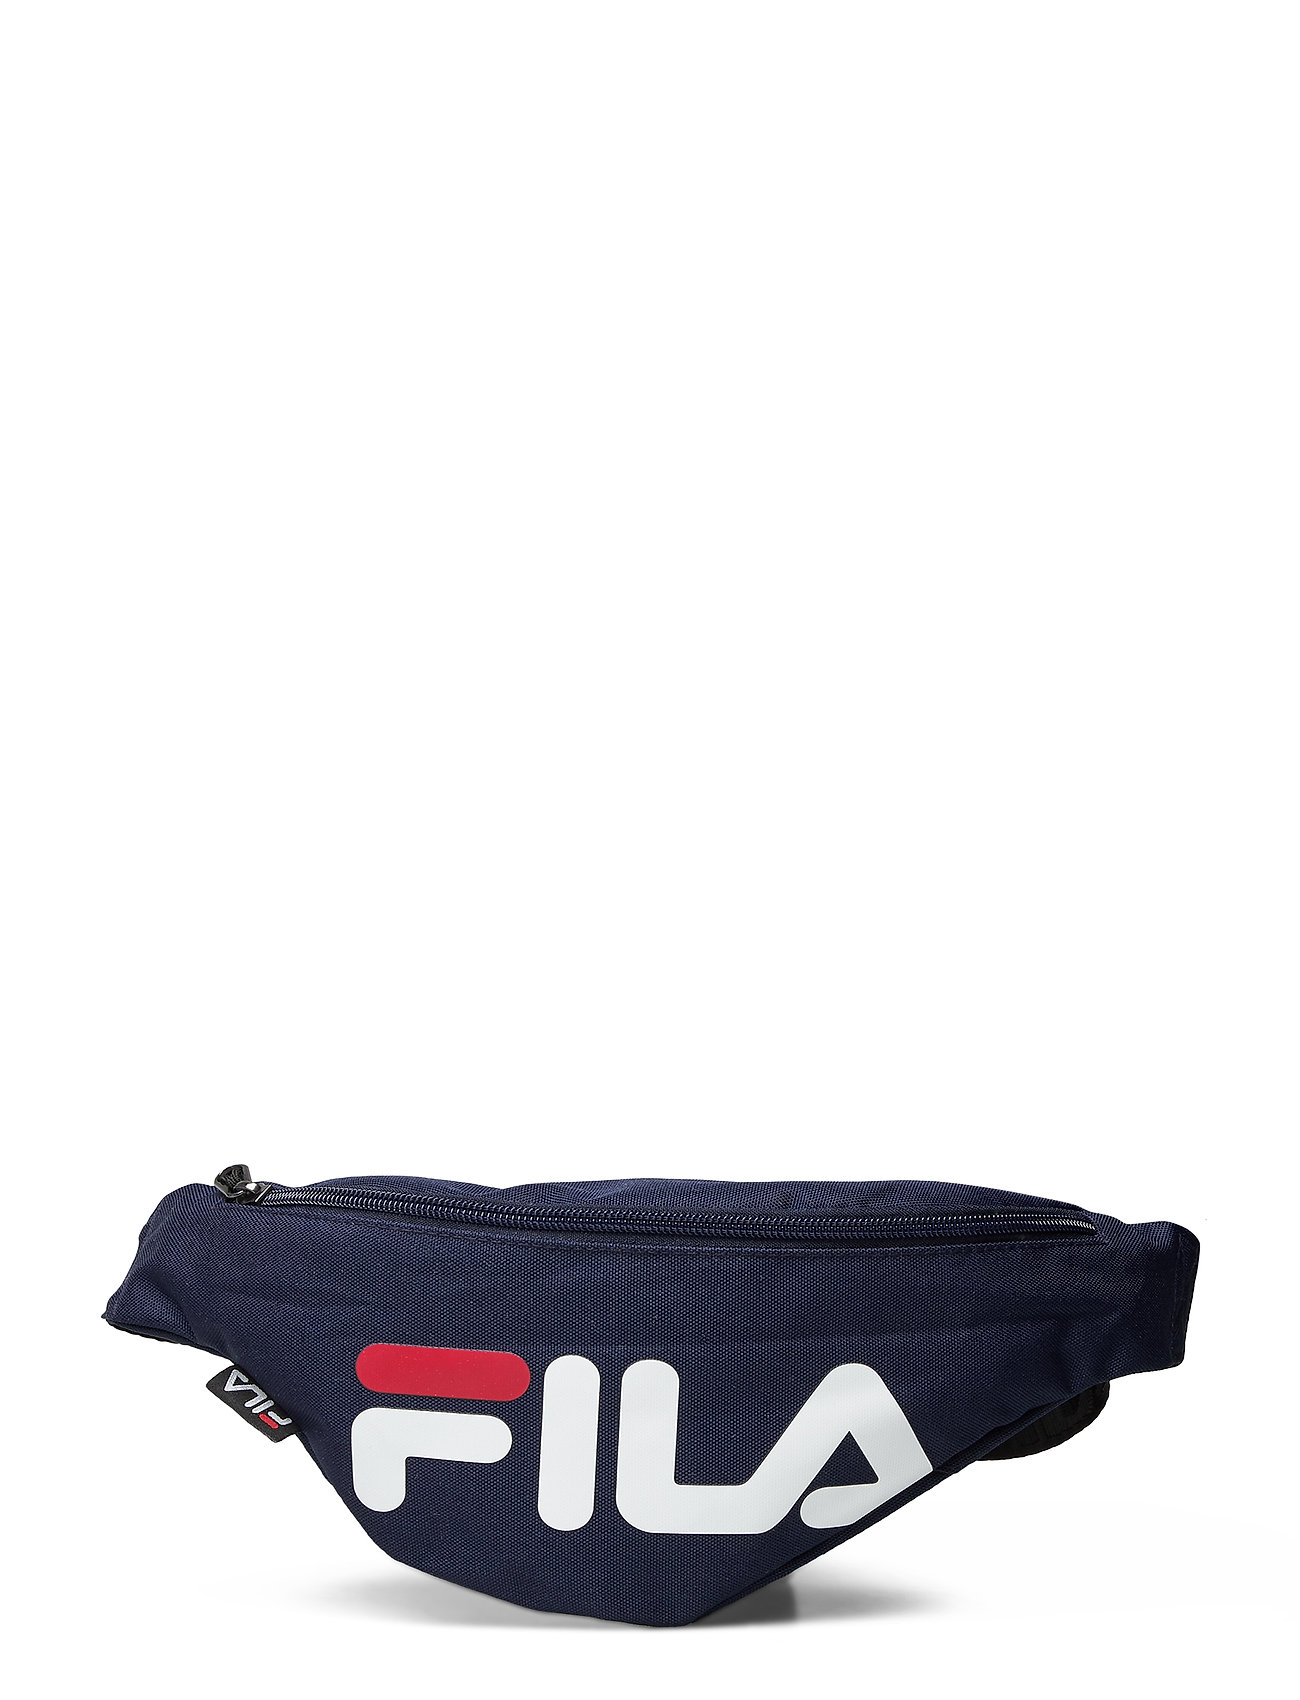 Image of Waist Bag Slim Bum Bag Taske Sort FILA (3448366659)